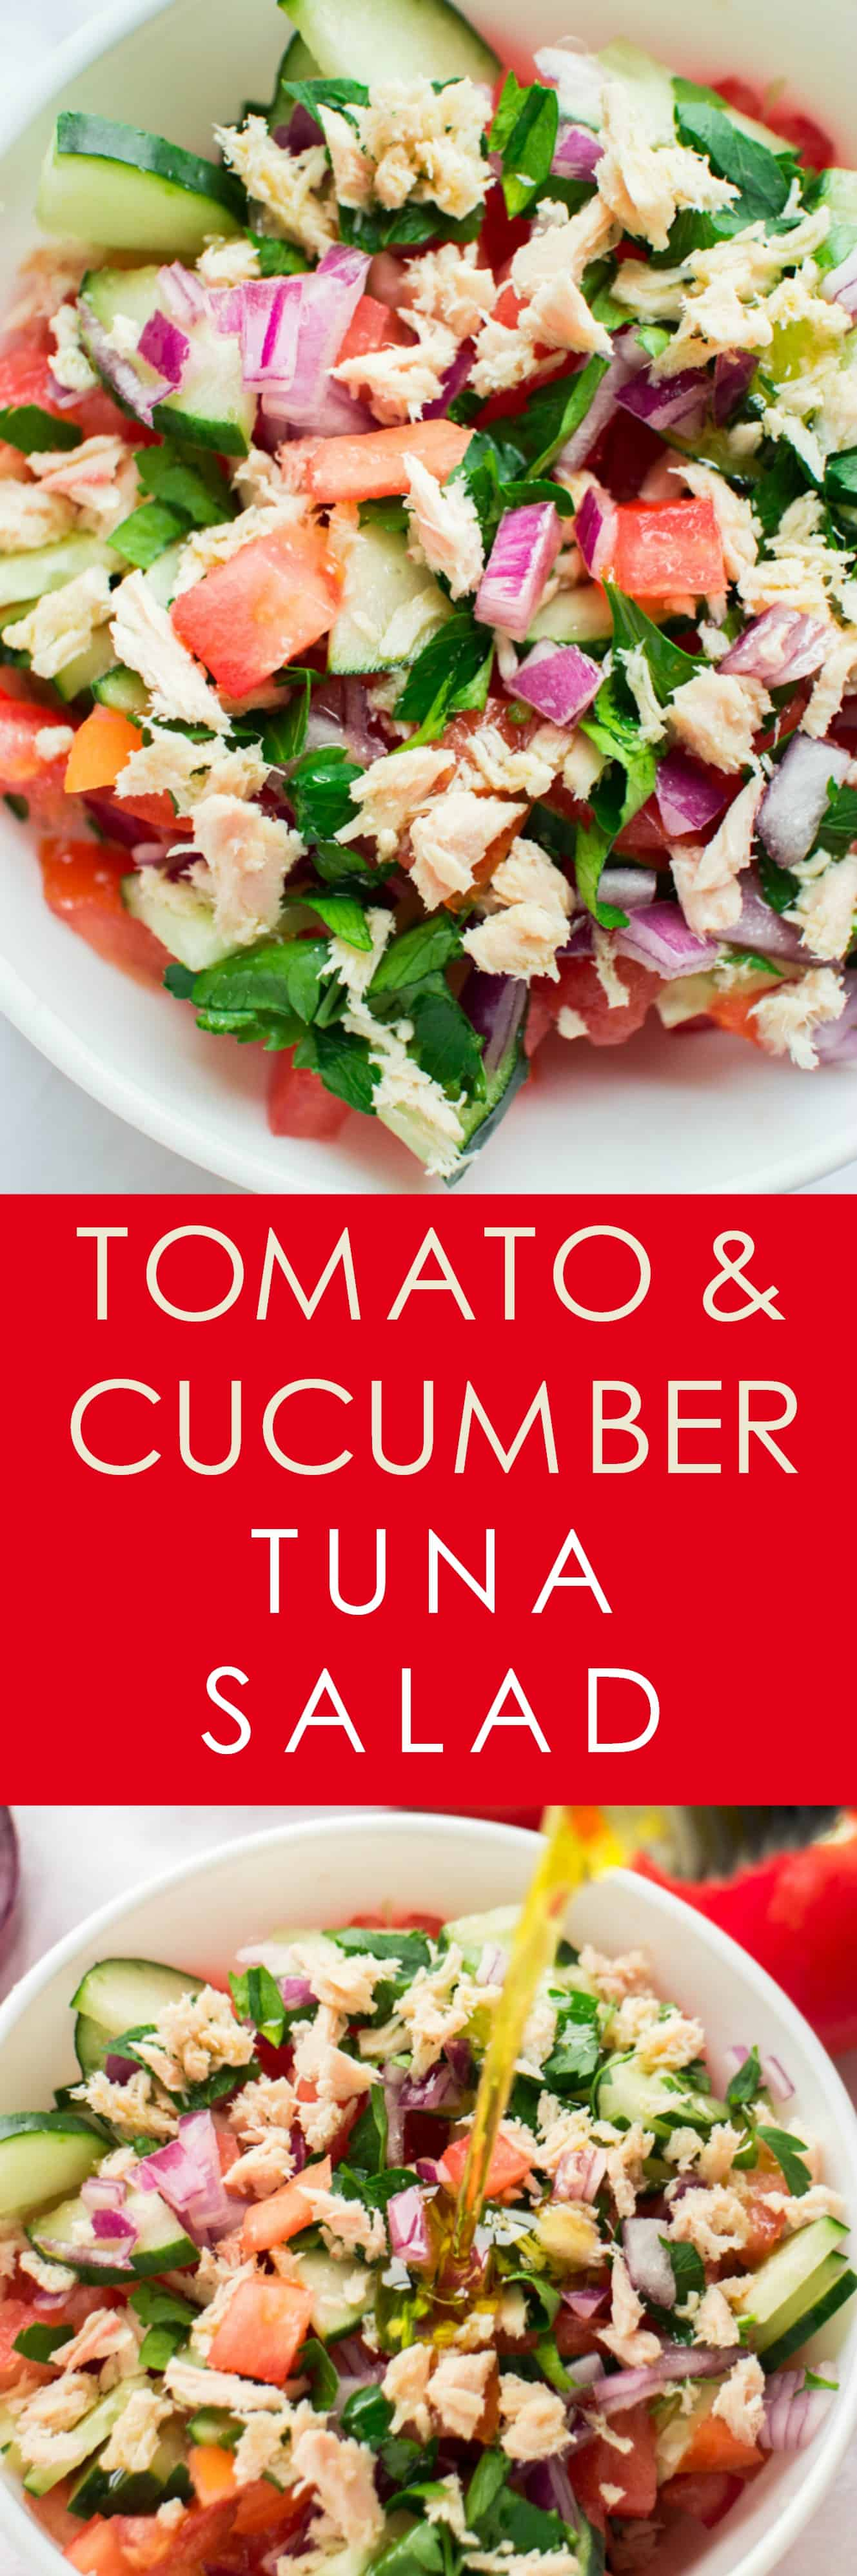 HEALTHY Tuna Cucumber Tomato Salad with olive oil dressing! This super easy salad recipe is only 140 calories a serving! I love using fresh tomatoes, cucumber and onions from the garden! It's completely dairy free too!